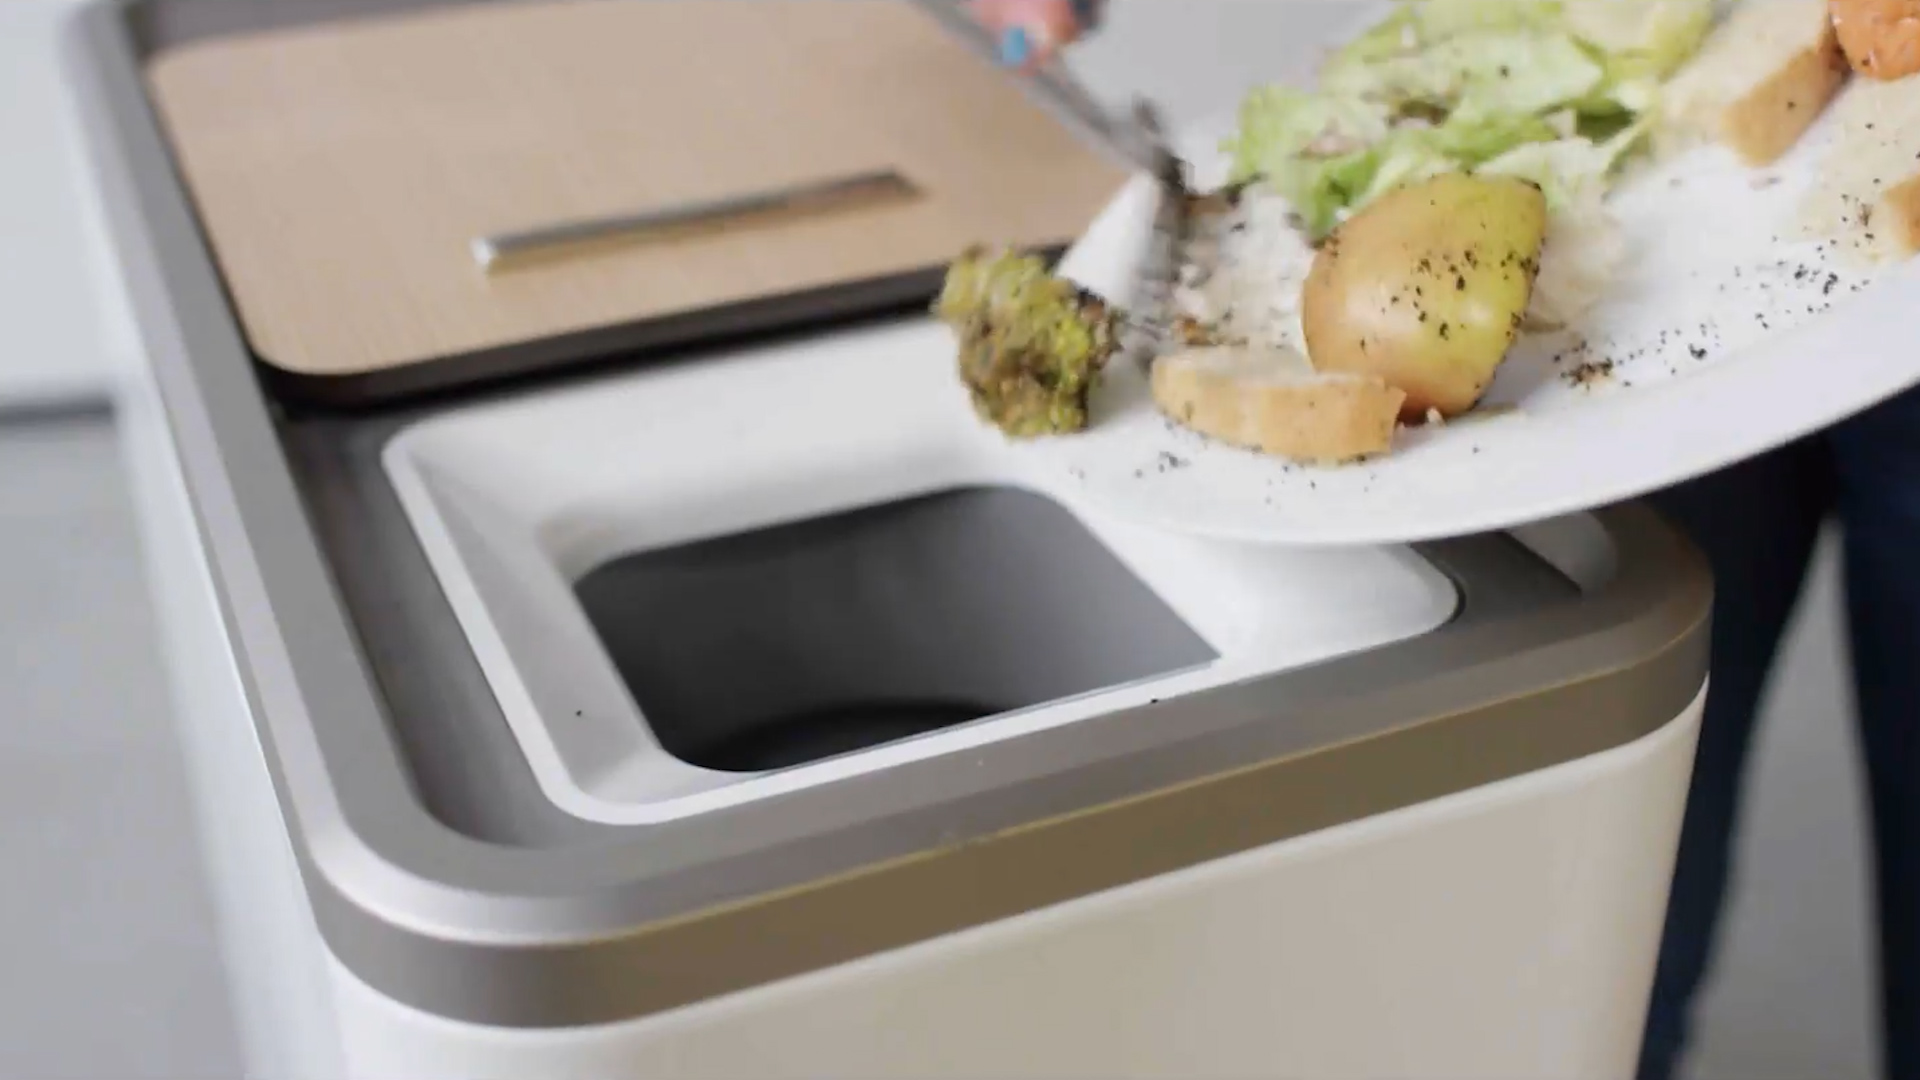 This Magical Food Recycler Eliminates The Grossest Thing About